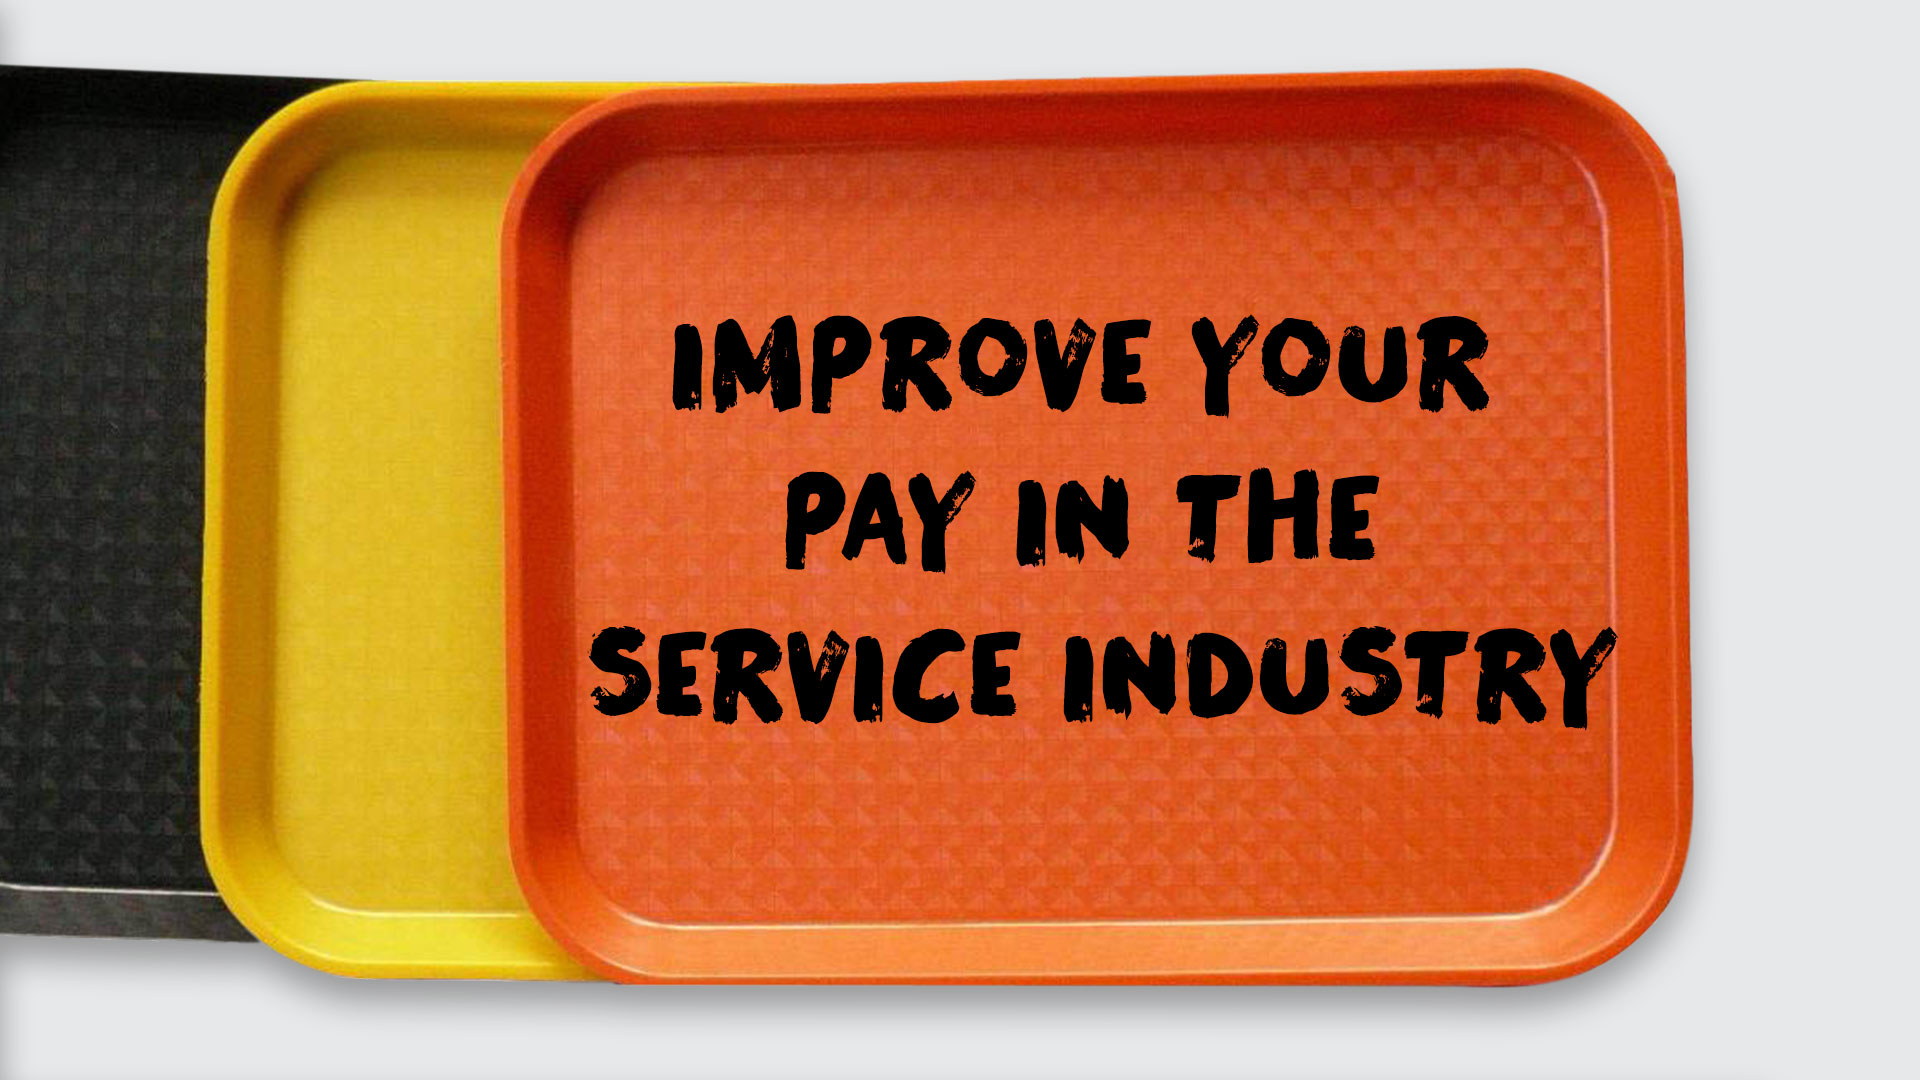 7 Tips to Improve Your Pay in the Service Industry